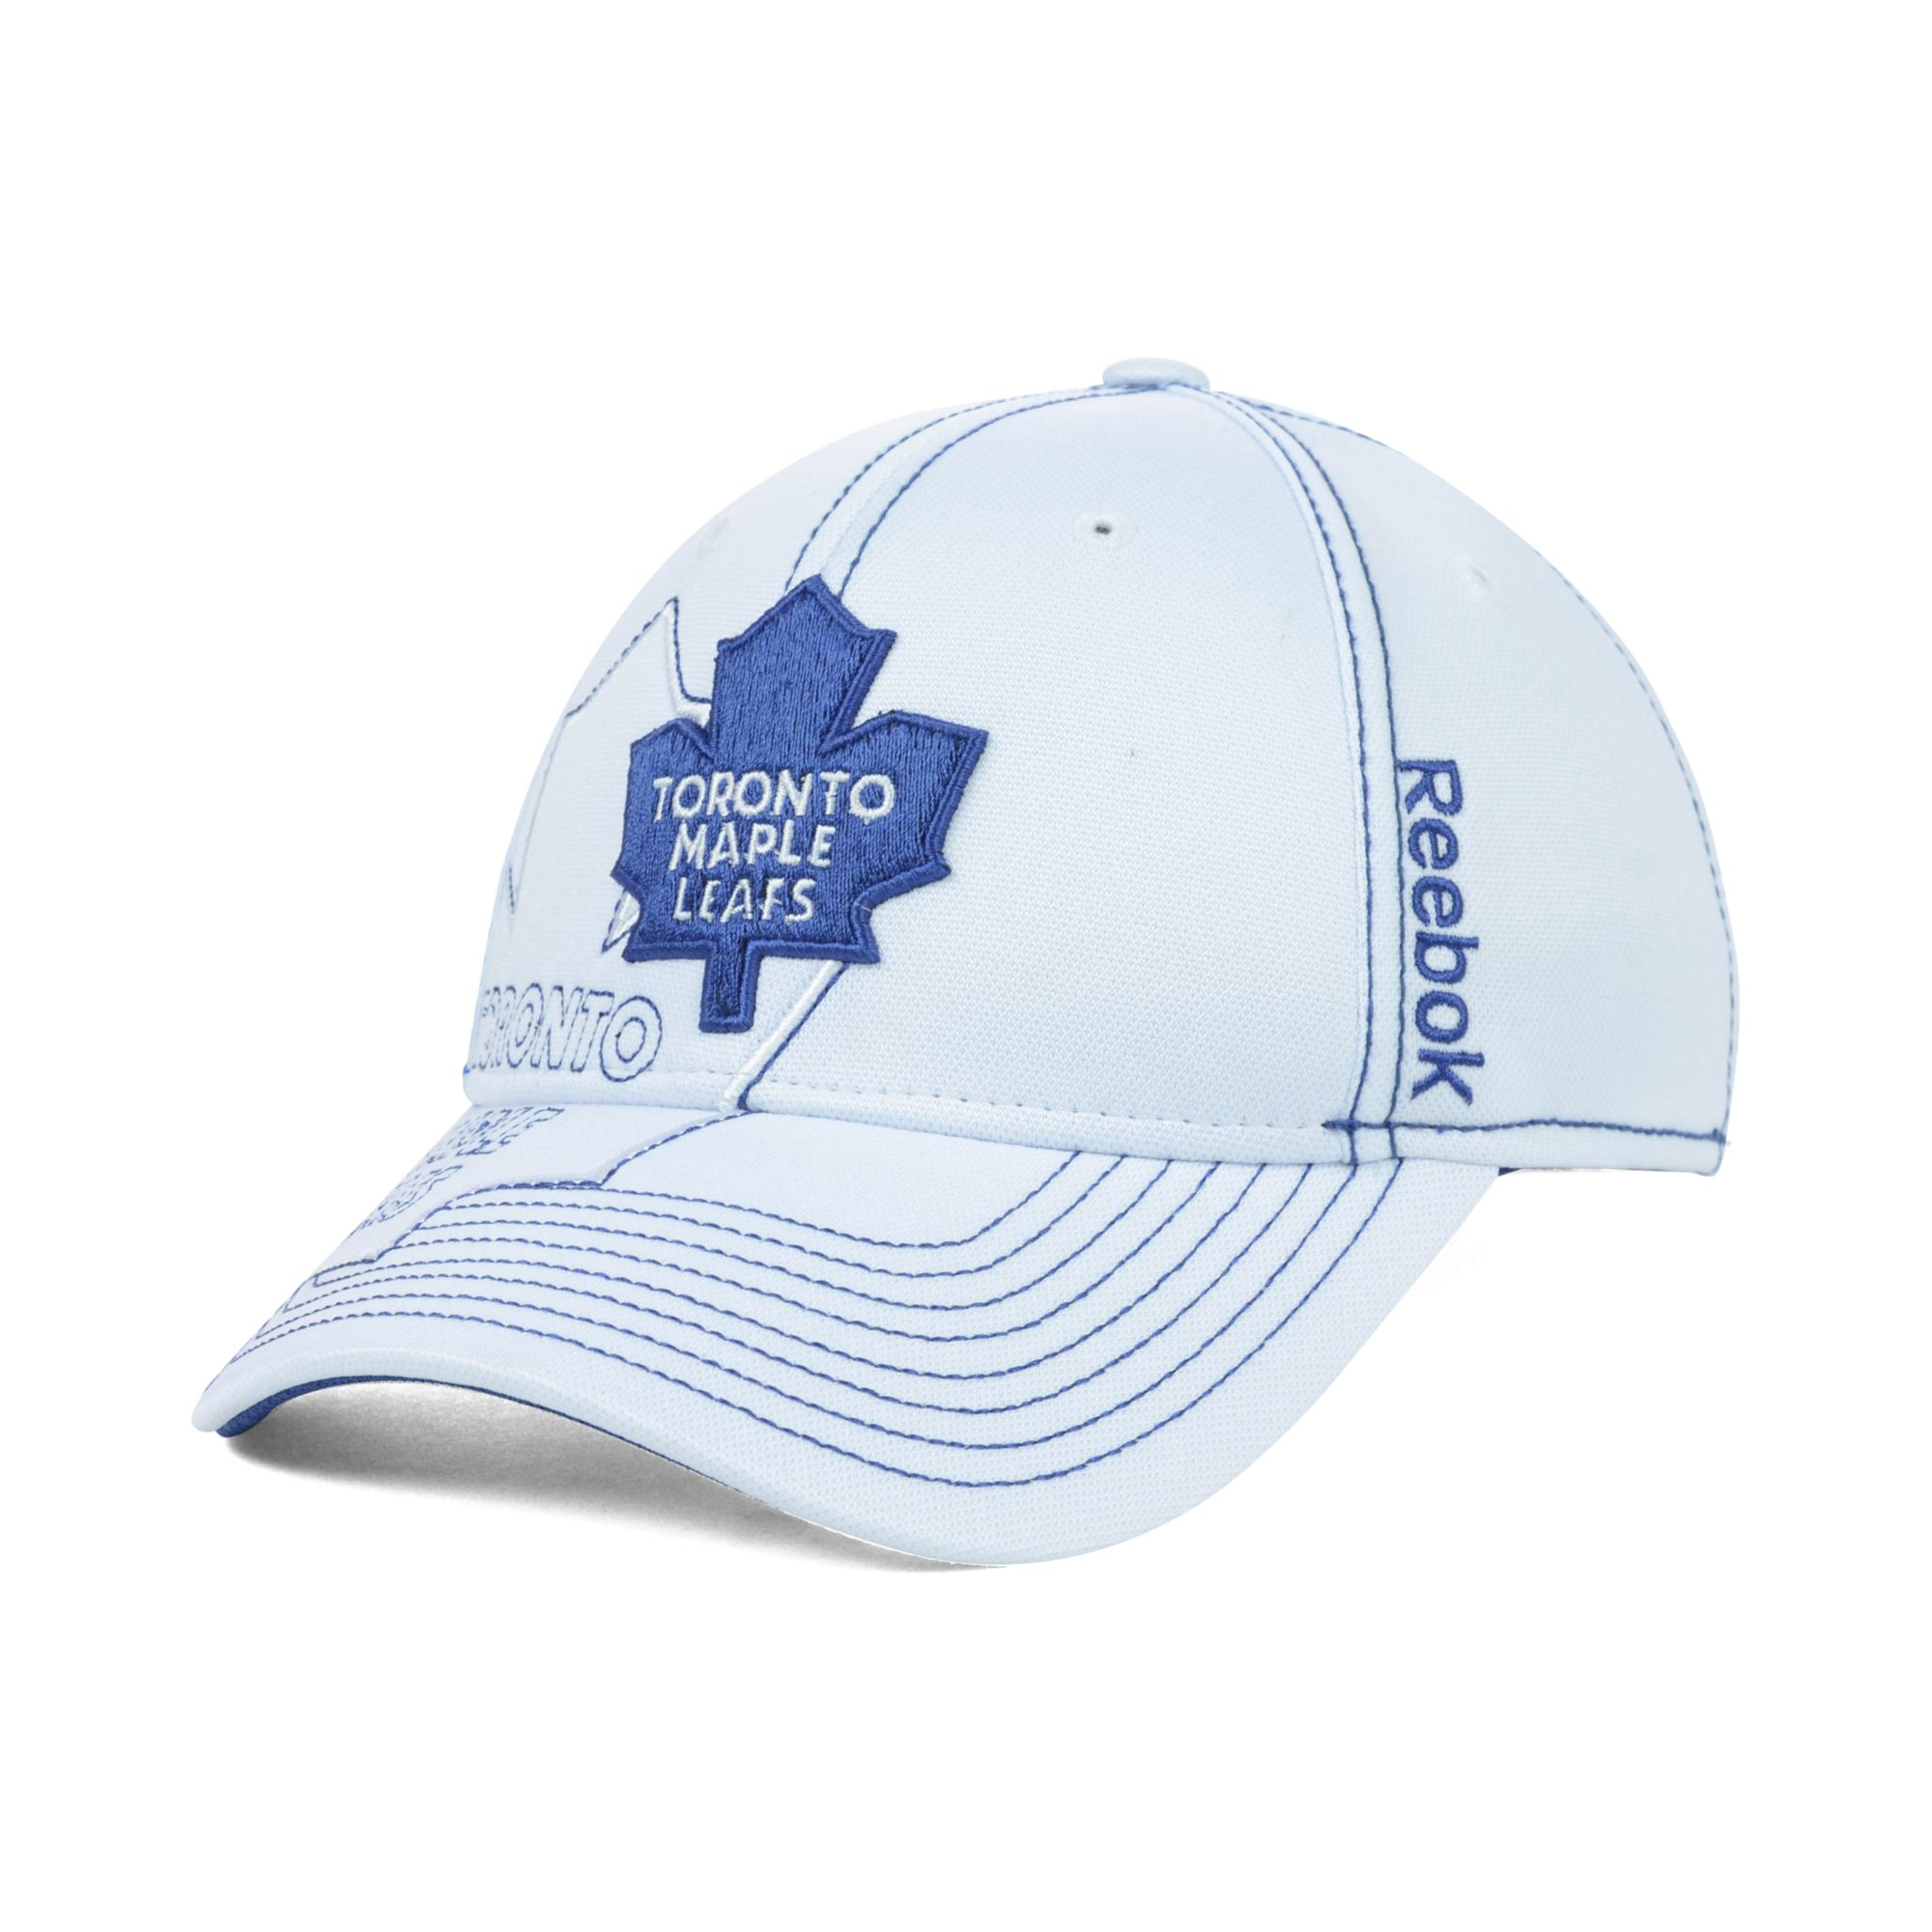 ... greece greece lyst reebok toronto maple leafs nhl 2nd season draft cap  in blue 54c6d 6aec5 8832c59d6b79